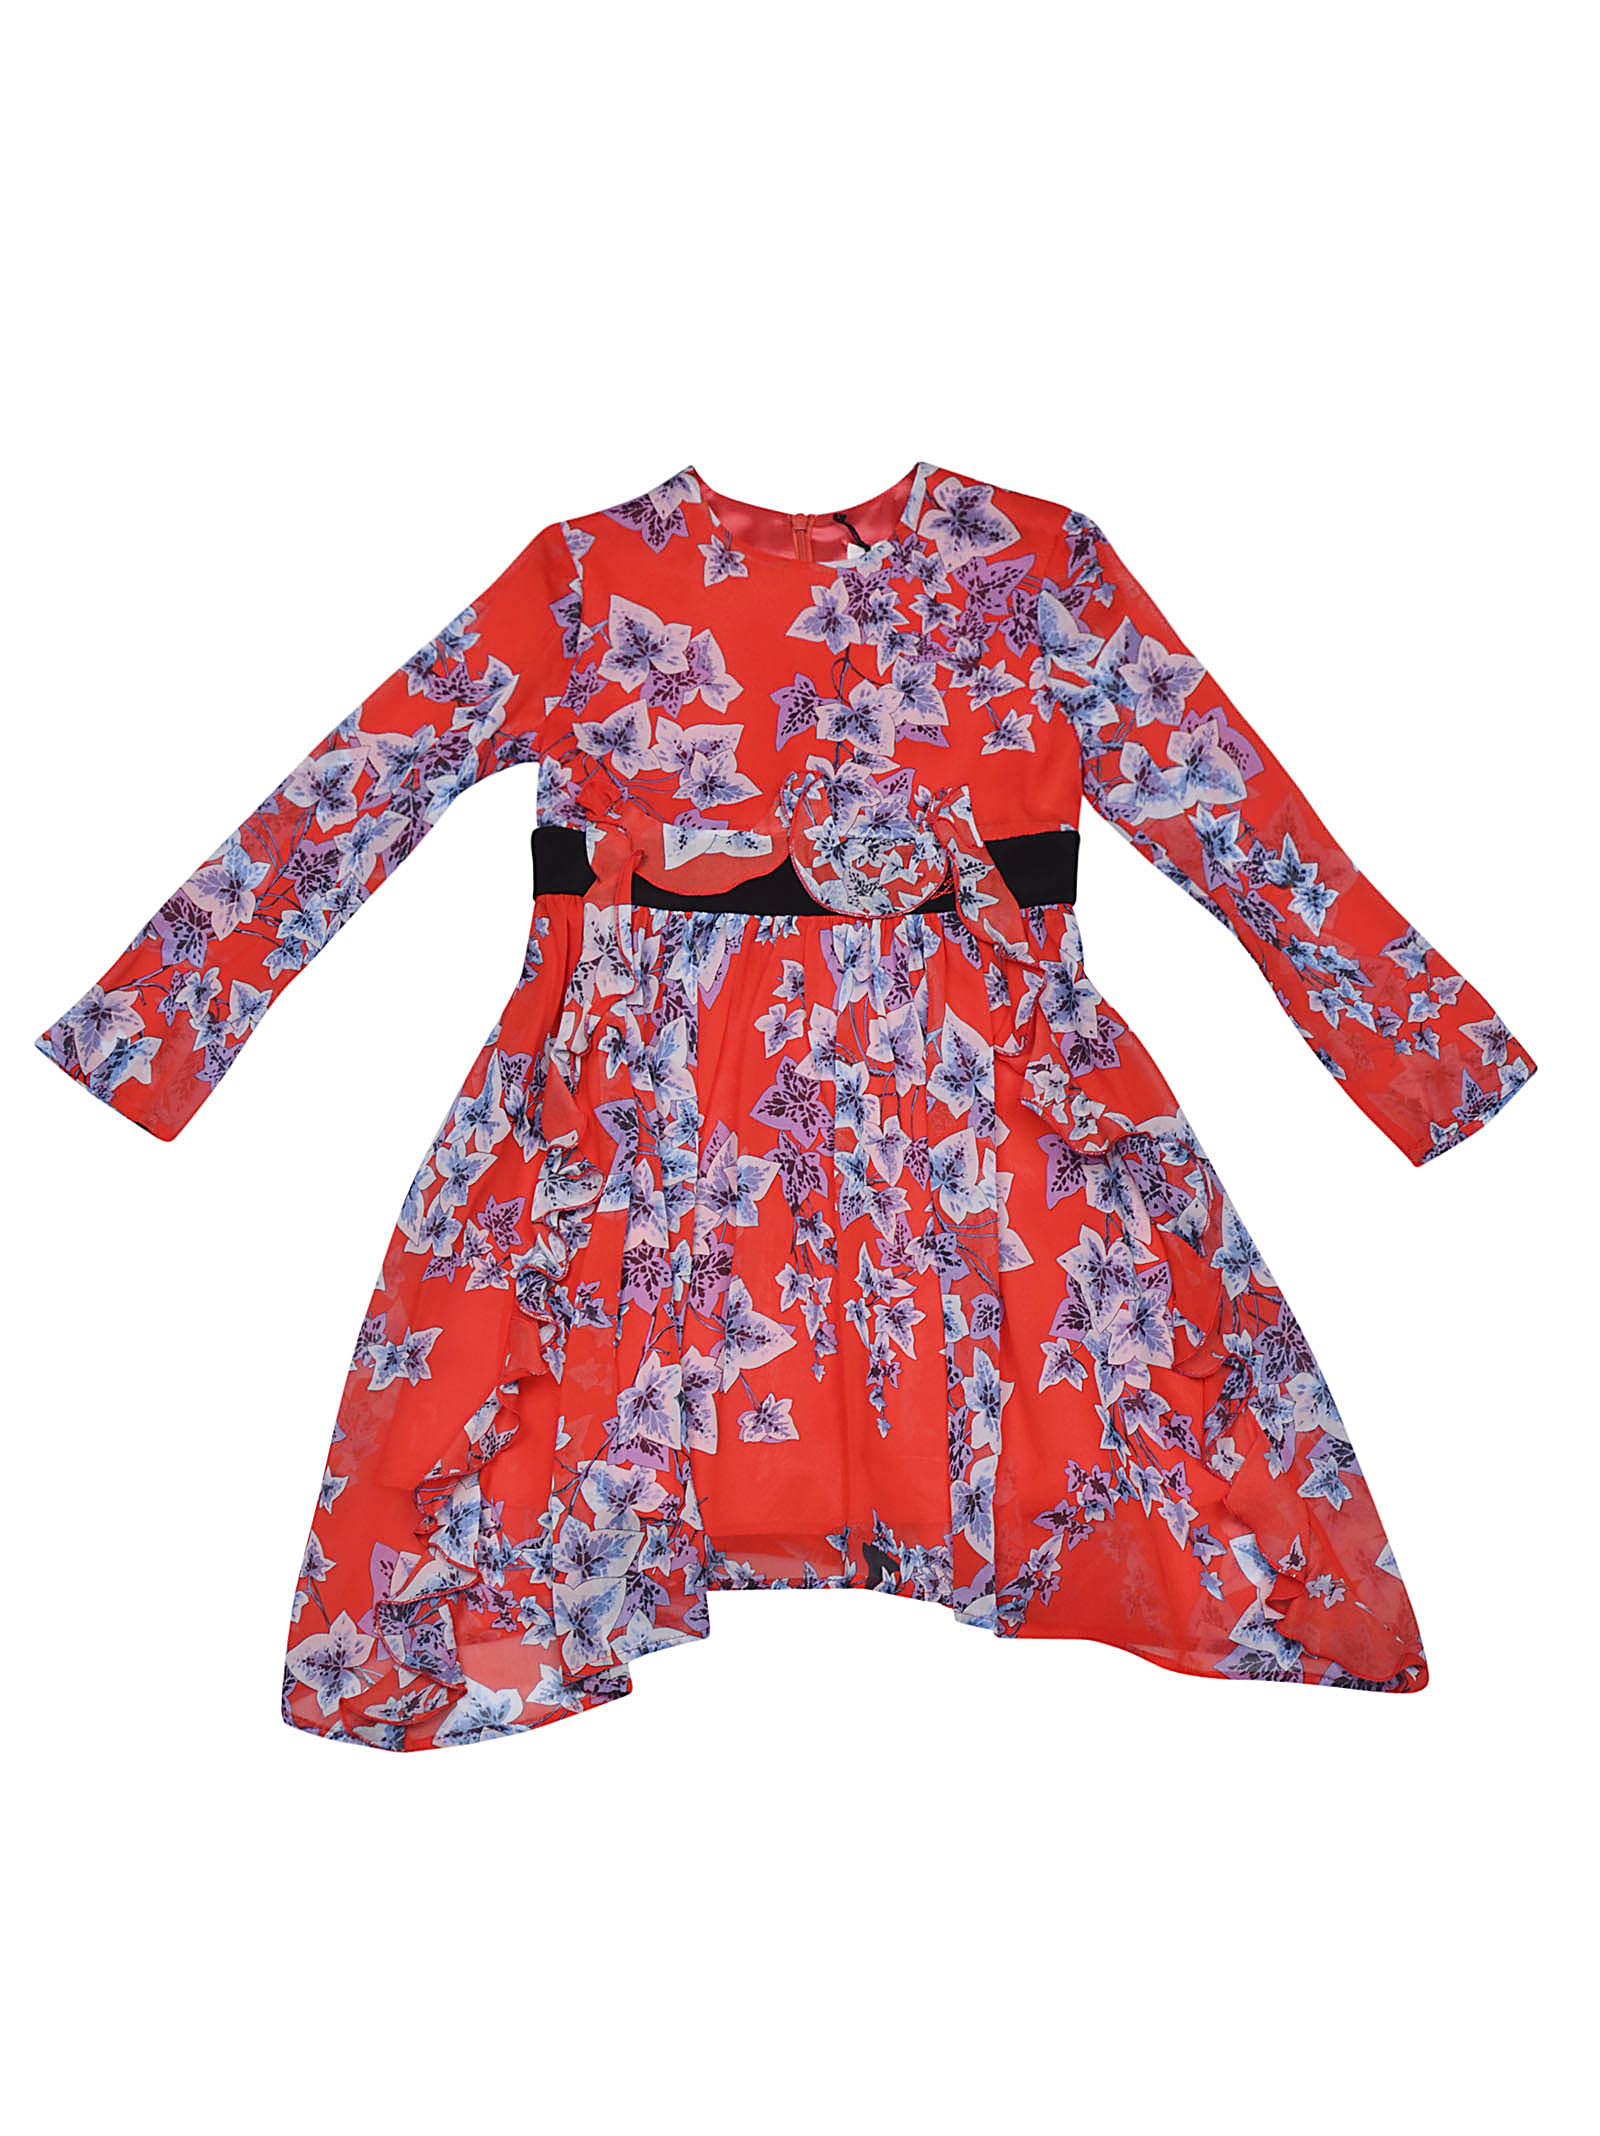 Photo of  Philosophy di Lorenzo Serafini Kids Floral Dress- shop Philosophy di Lorenzo Serafini Kids  online sales